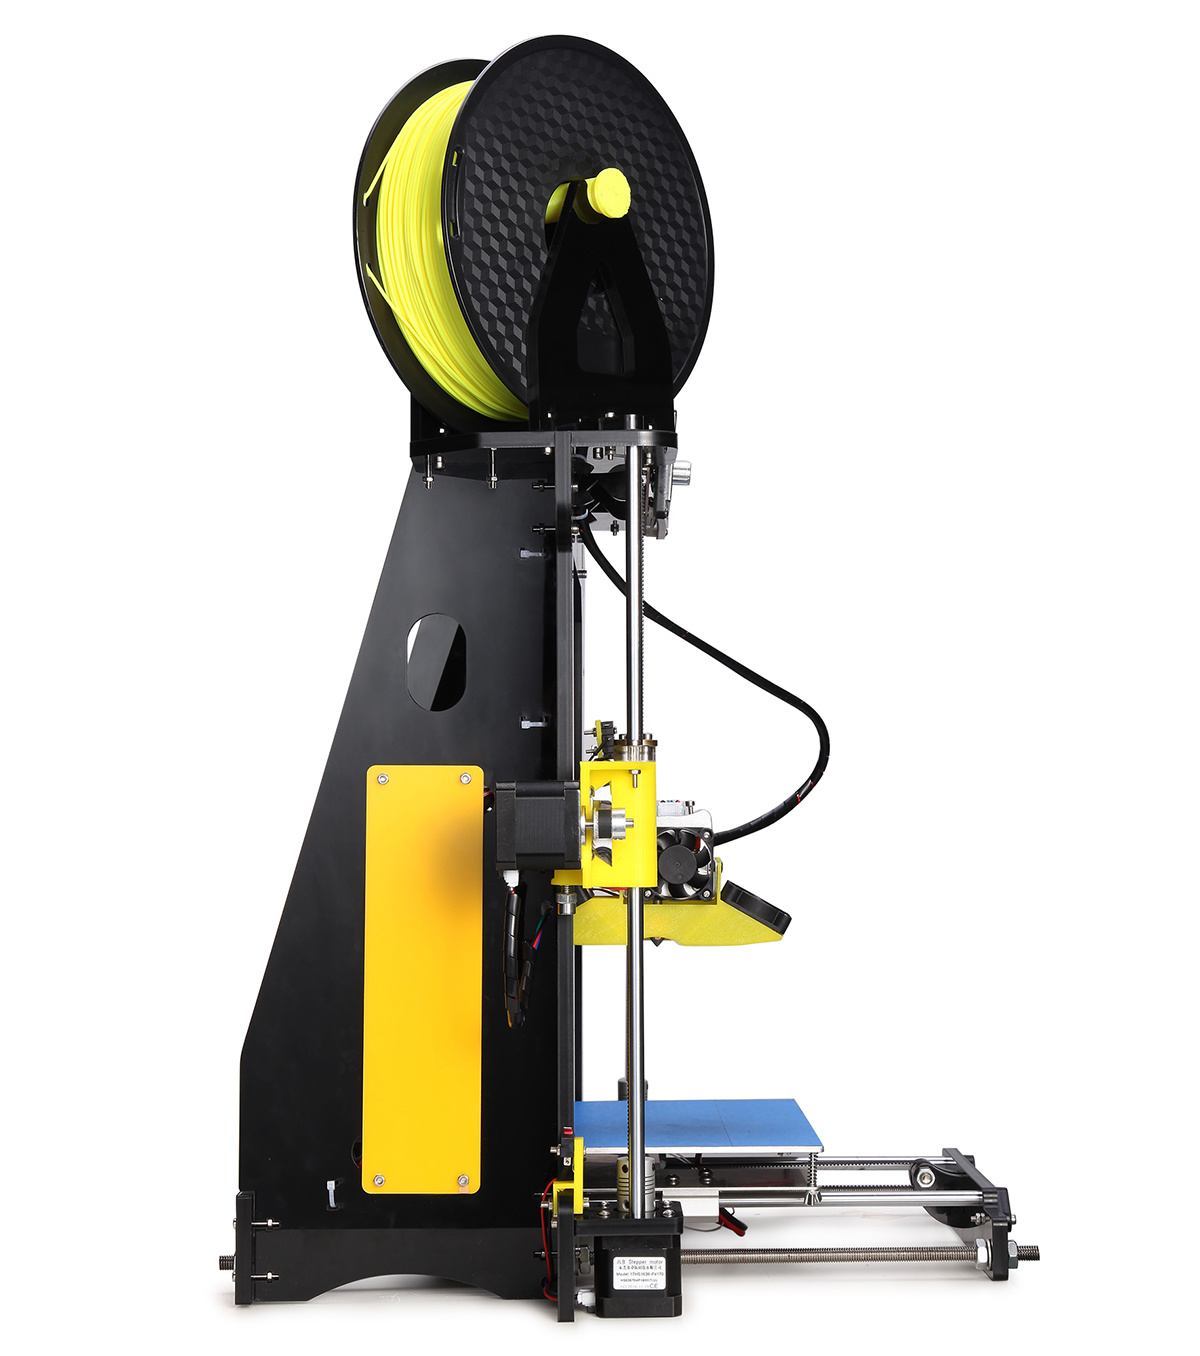 2017 Acrylic Rapid Prototype Desktop DIY Fdm 3D Printer Machine